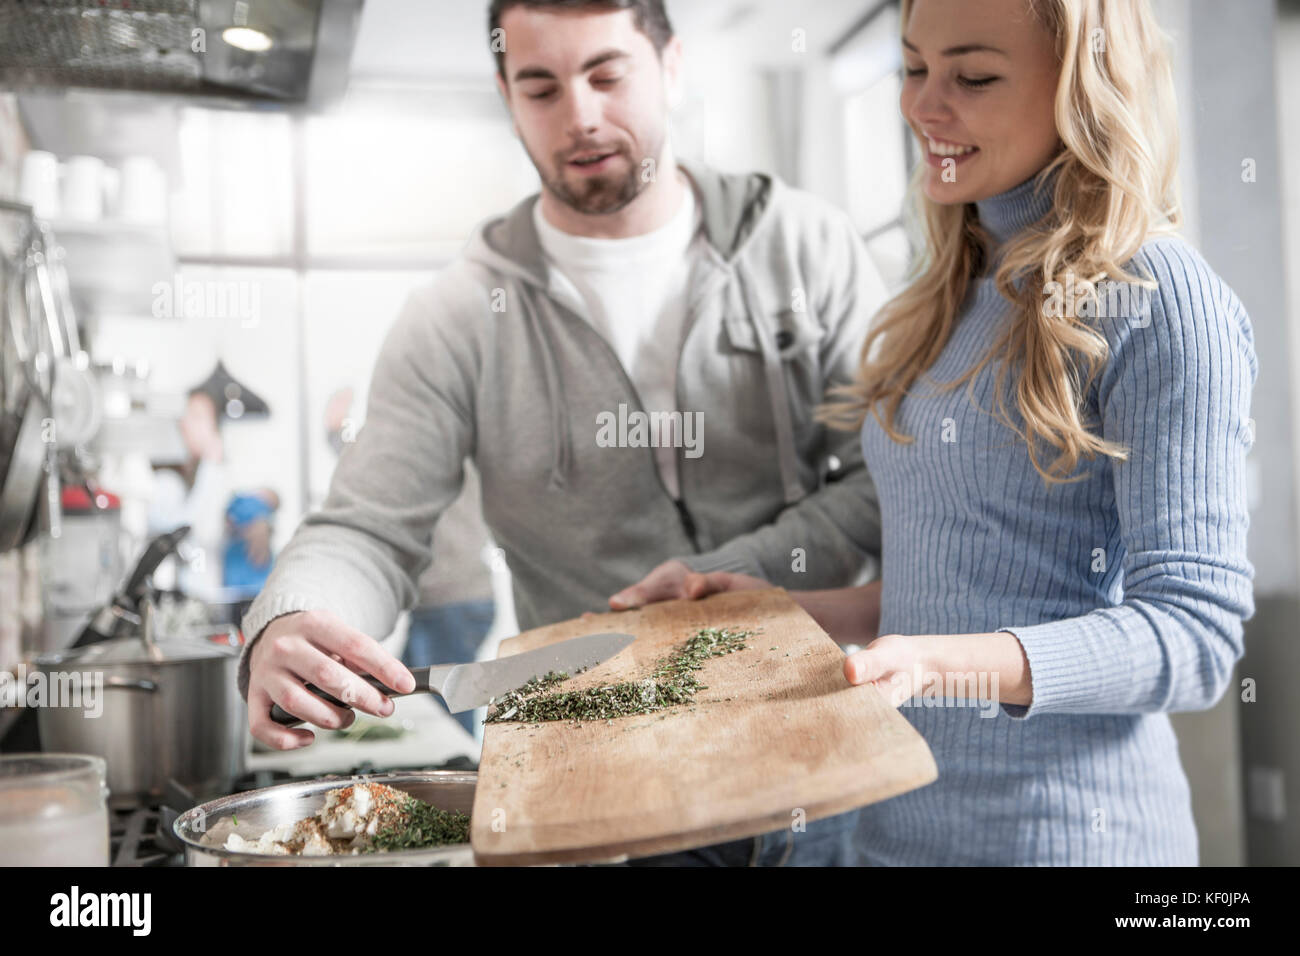 Couple helping one another moving spices in pot - Stock Image